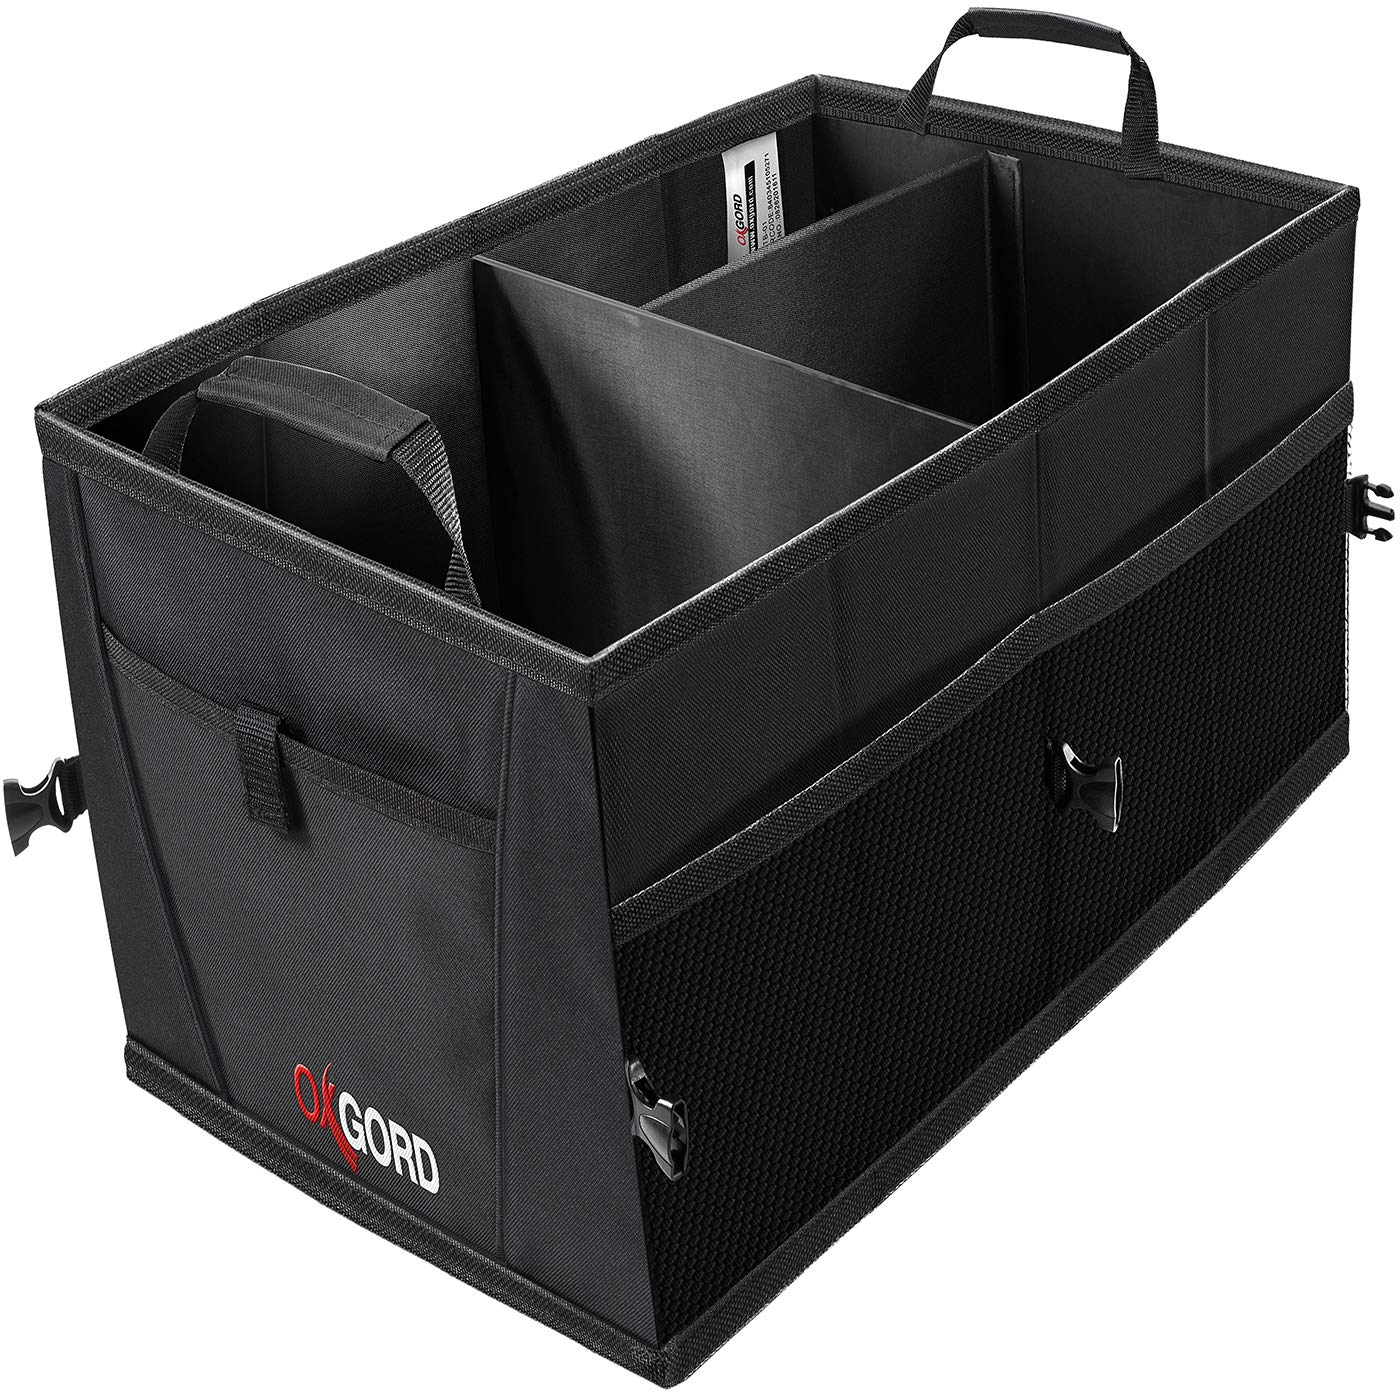 Trunk Organizer for Car Storage - Organizers Best for SUV Truck Van Auto Accessories Organization Caddy Bag